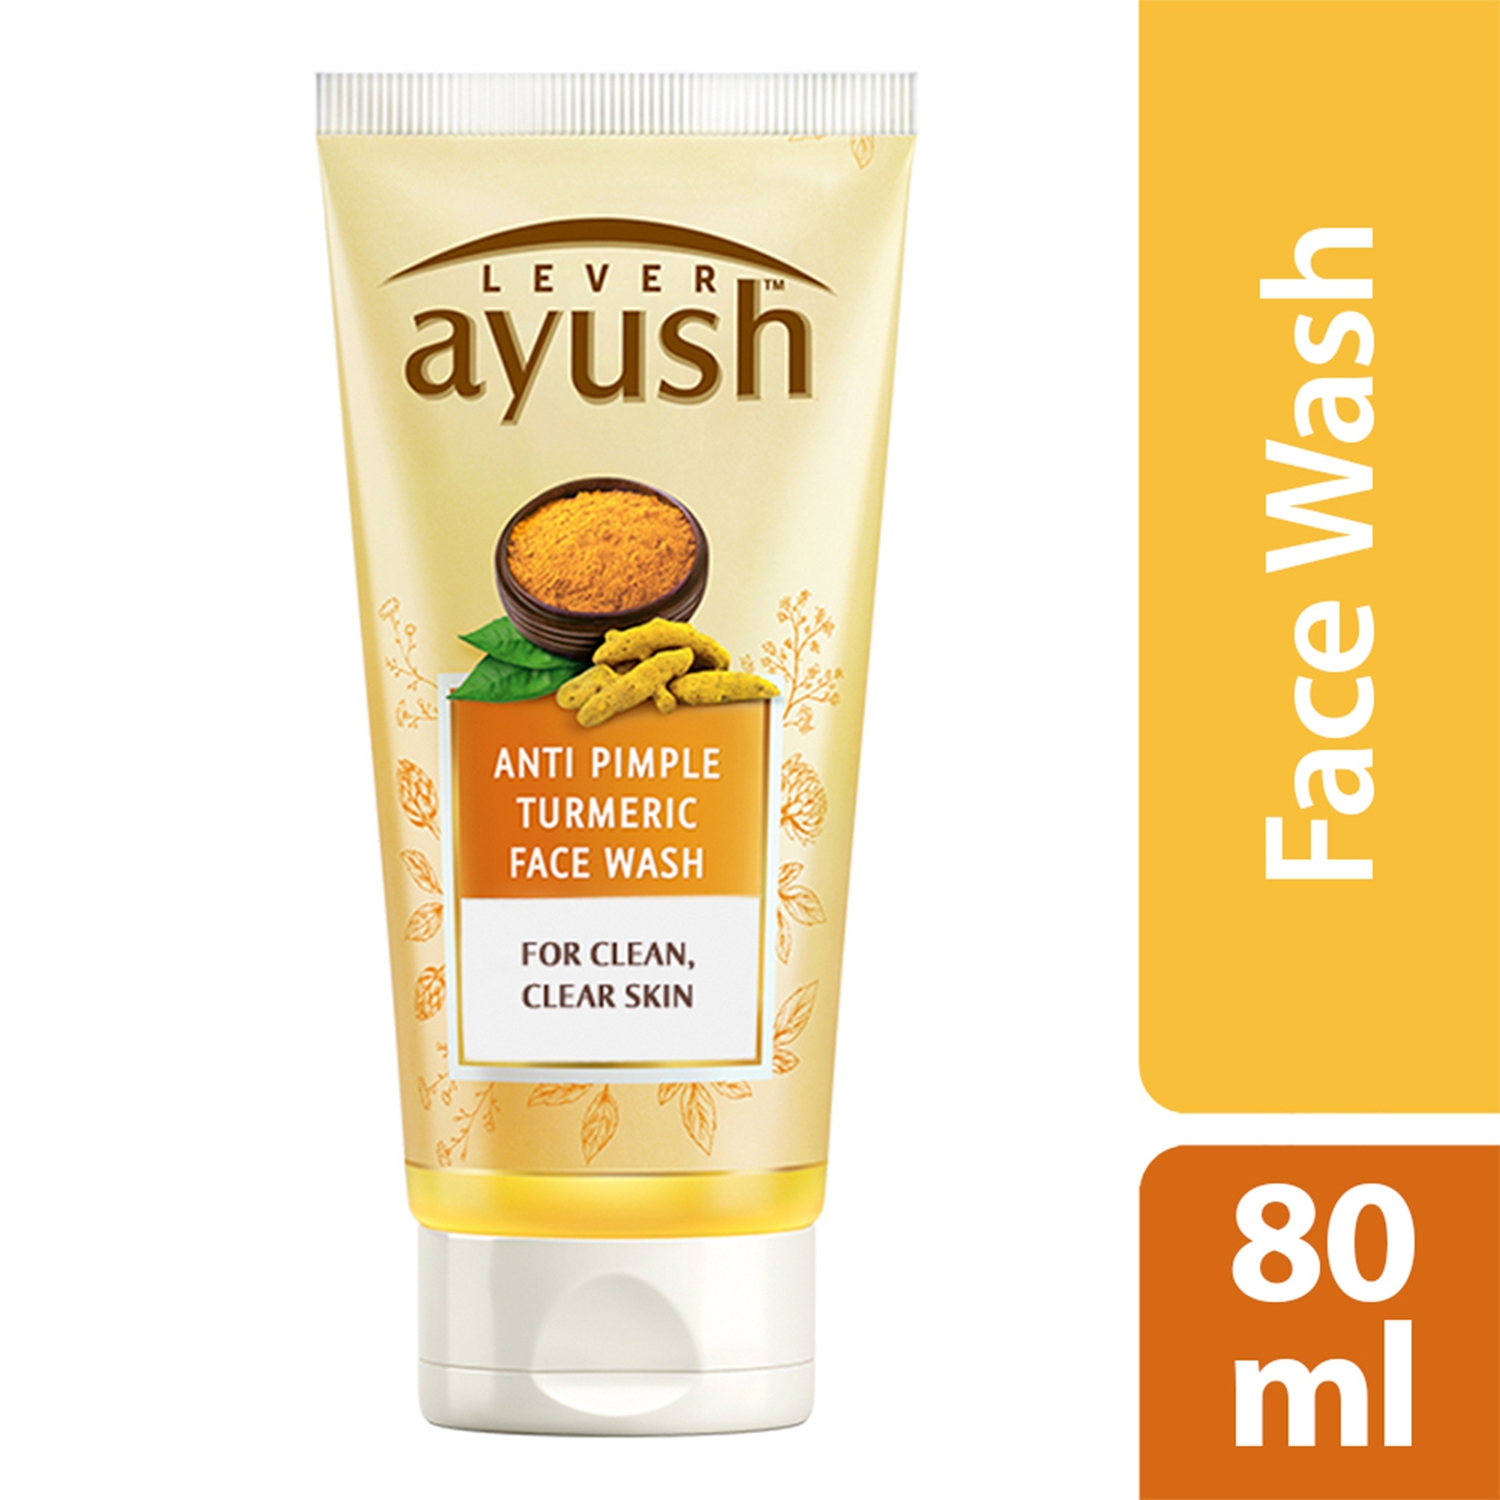 Lever Ayush Face wash Anti Pimple Turmeric-0